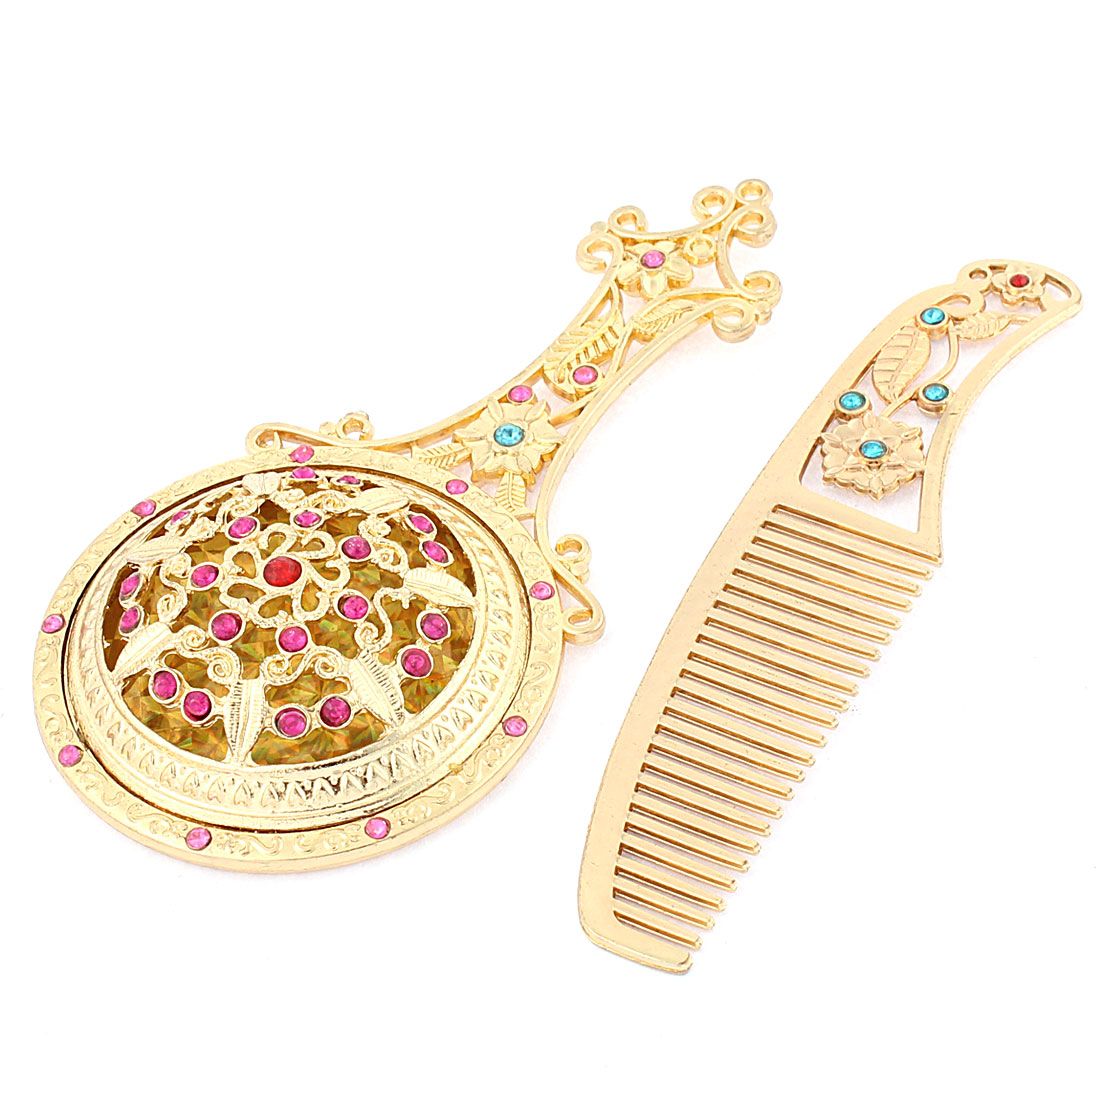 Lady Flower Leaf Shaped Faux Rhinestone Decor Handheld Cosmetic Mirror Comb Set